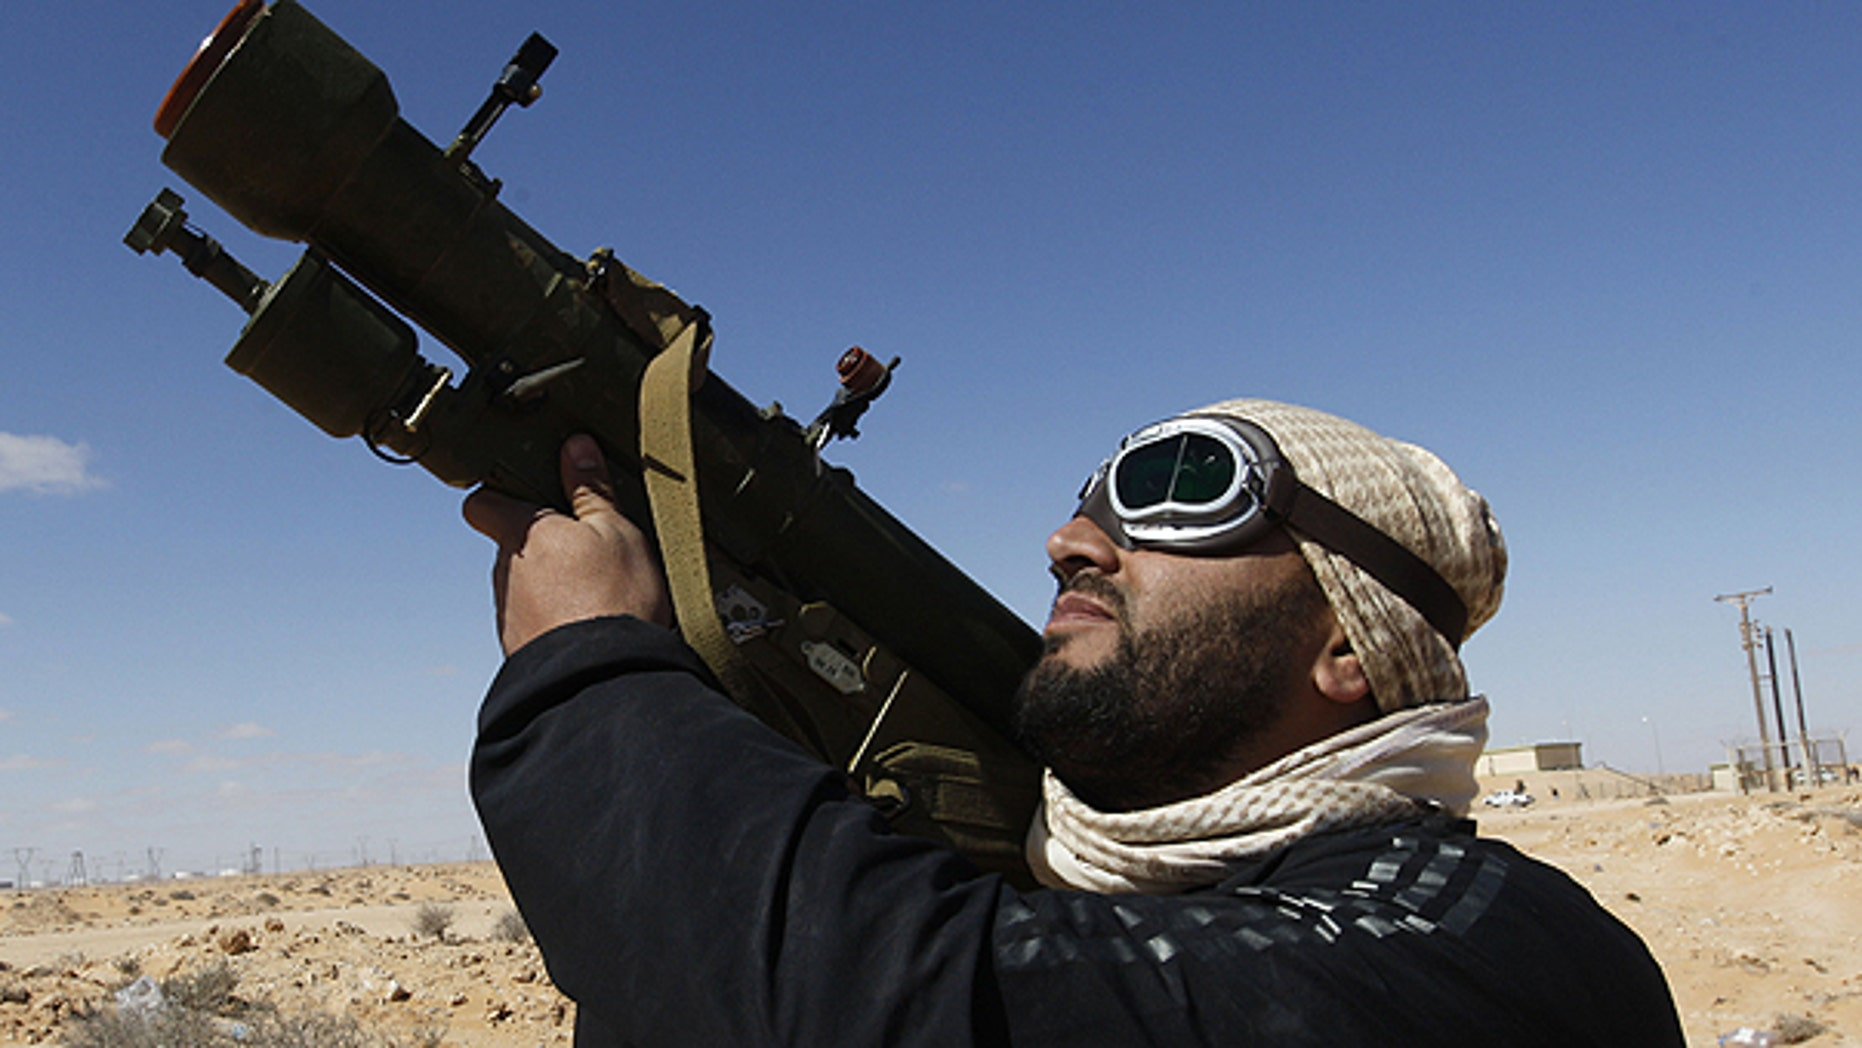 March 6: An rebel against Libyan leader Muammar Qaddafi holds his anti-aircraft missile as he looks to the sky, in the oil town of Ras Lanouf, eastern Libya.